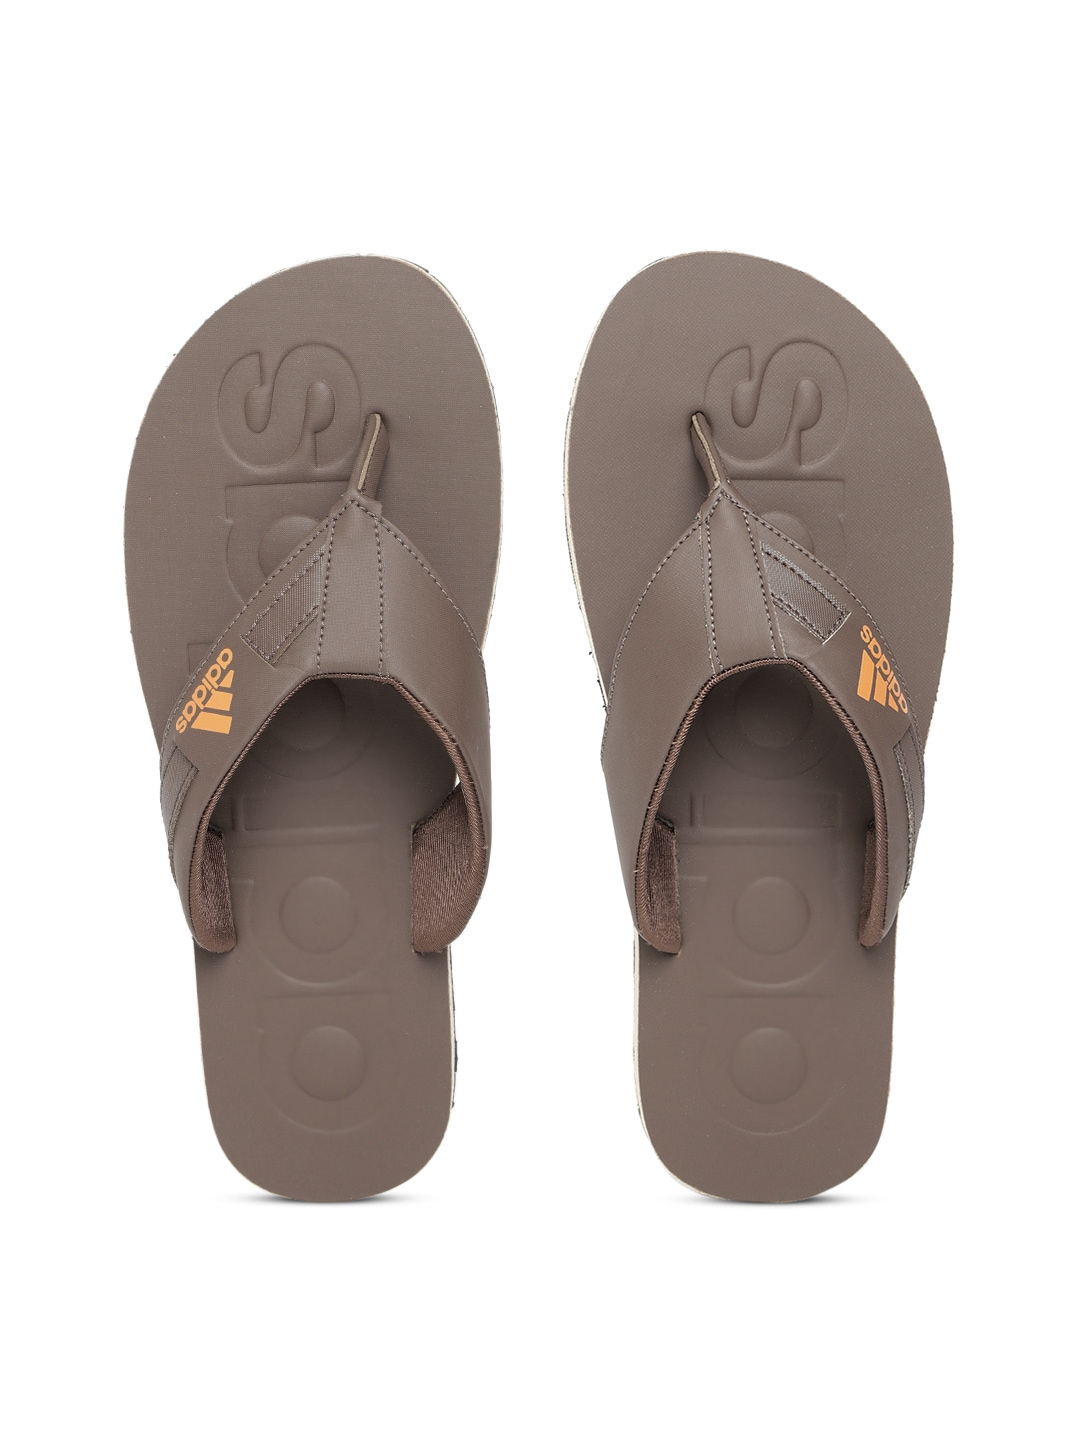 16cb84a30e52 Flip Flops for Men - Buy Slippers   Flip Flops for Men Online